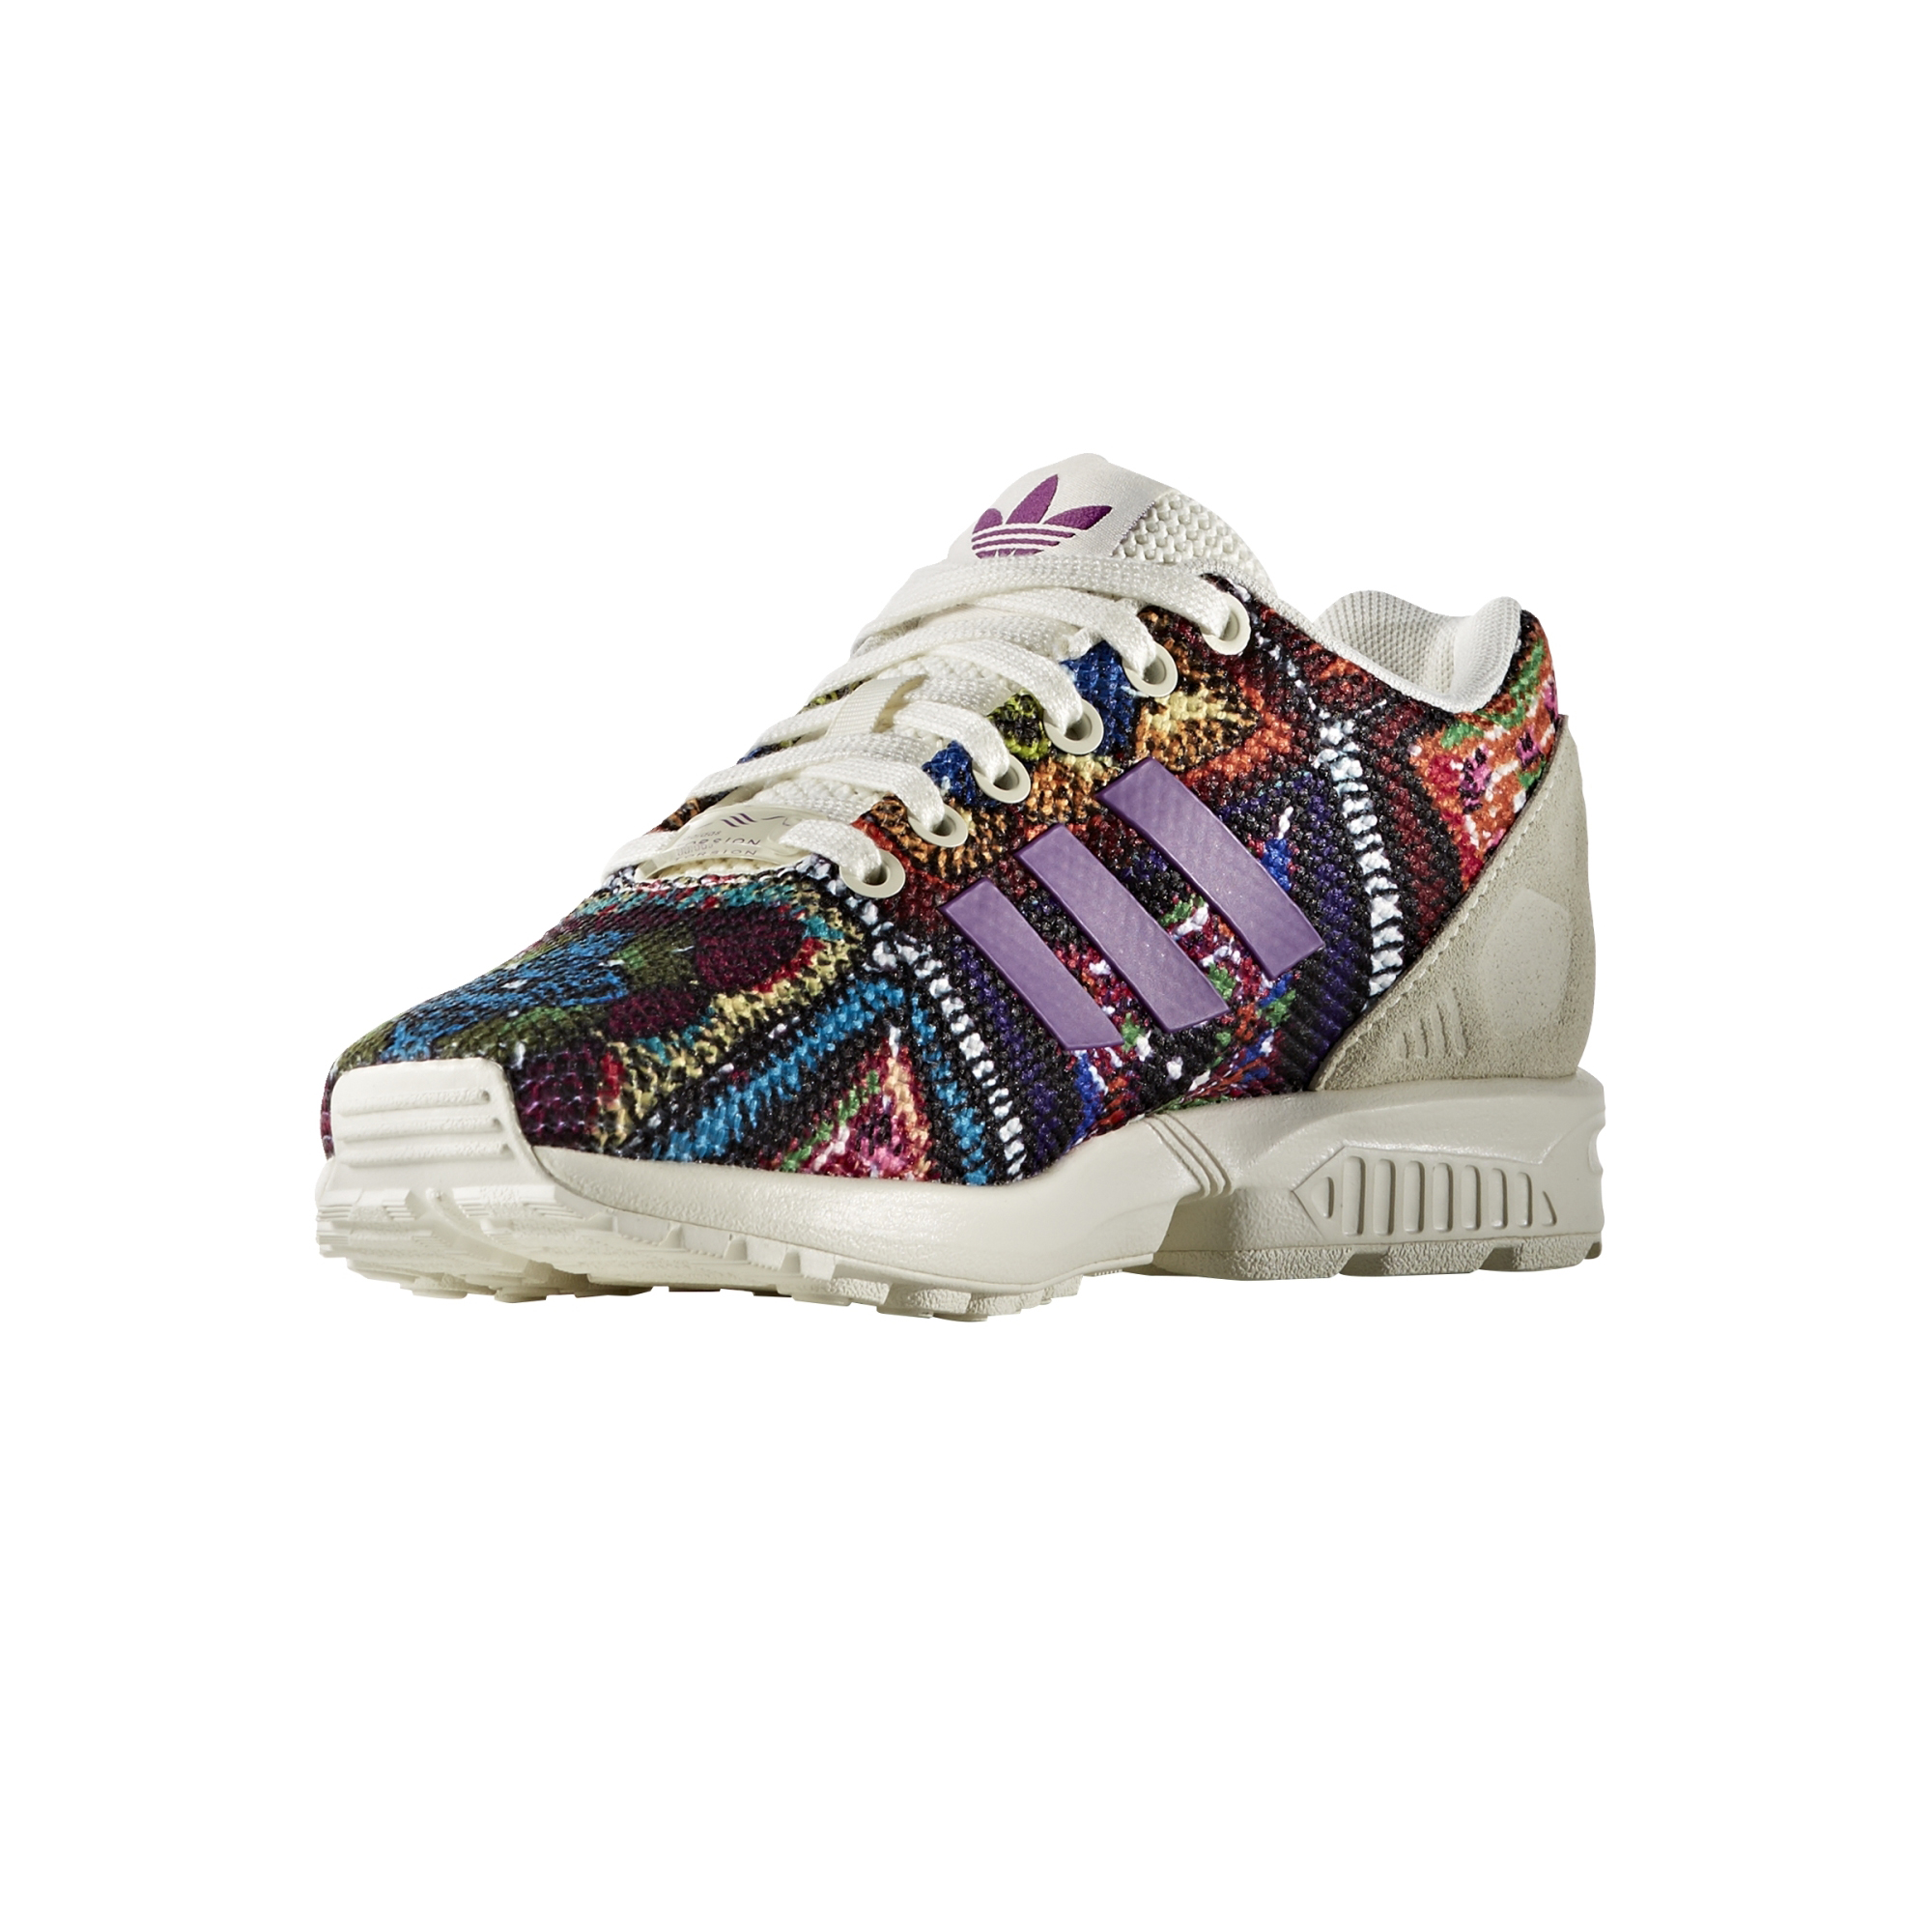 low priced e081a b07f9 adidas-originals-zx-flux-w-the-farm-crochita-multicolor-11.jpg